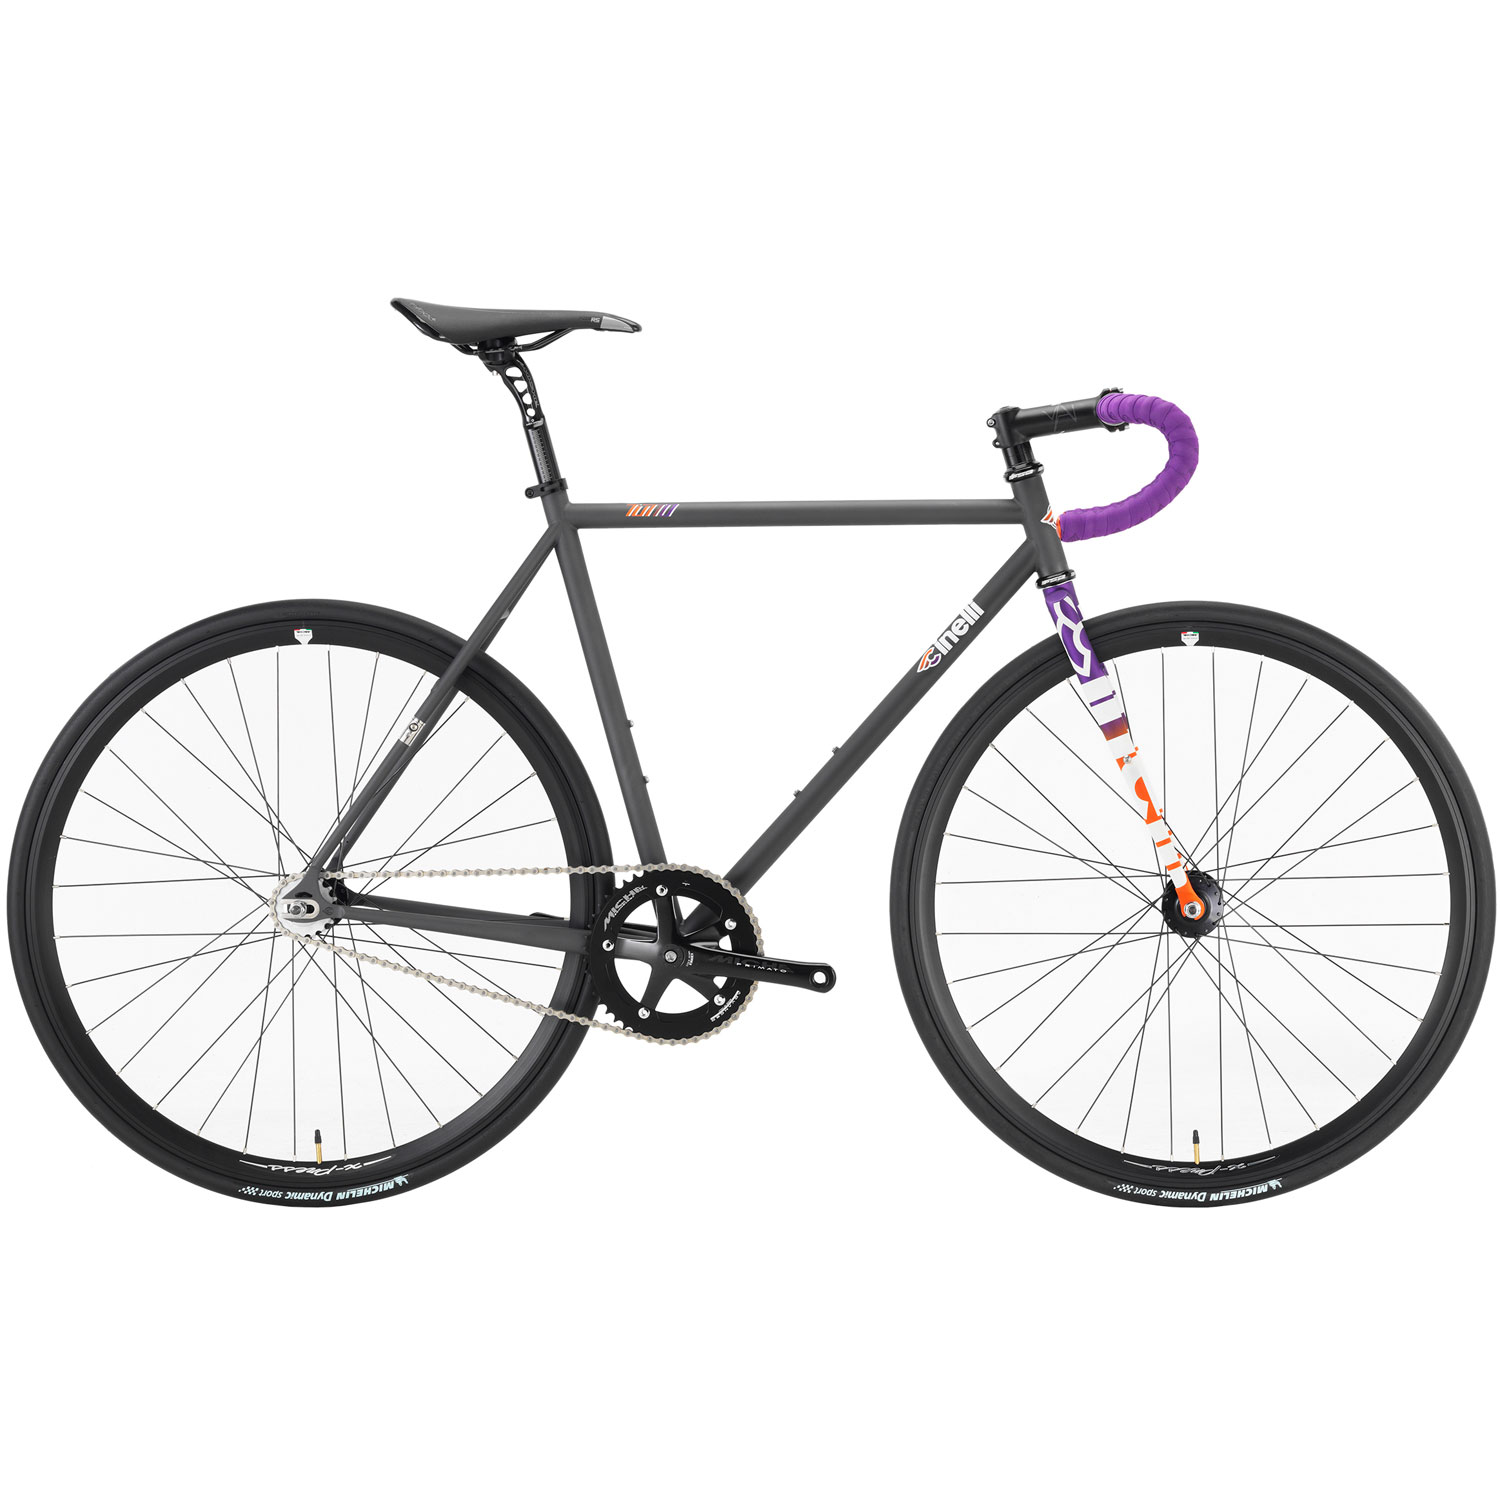 Cinelli Tutto 2018 Singlespeed/ Track/ Fixed/ Bike - Buy Online ...